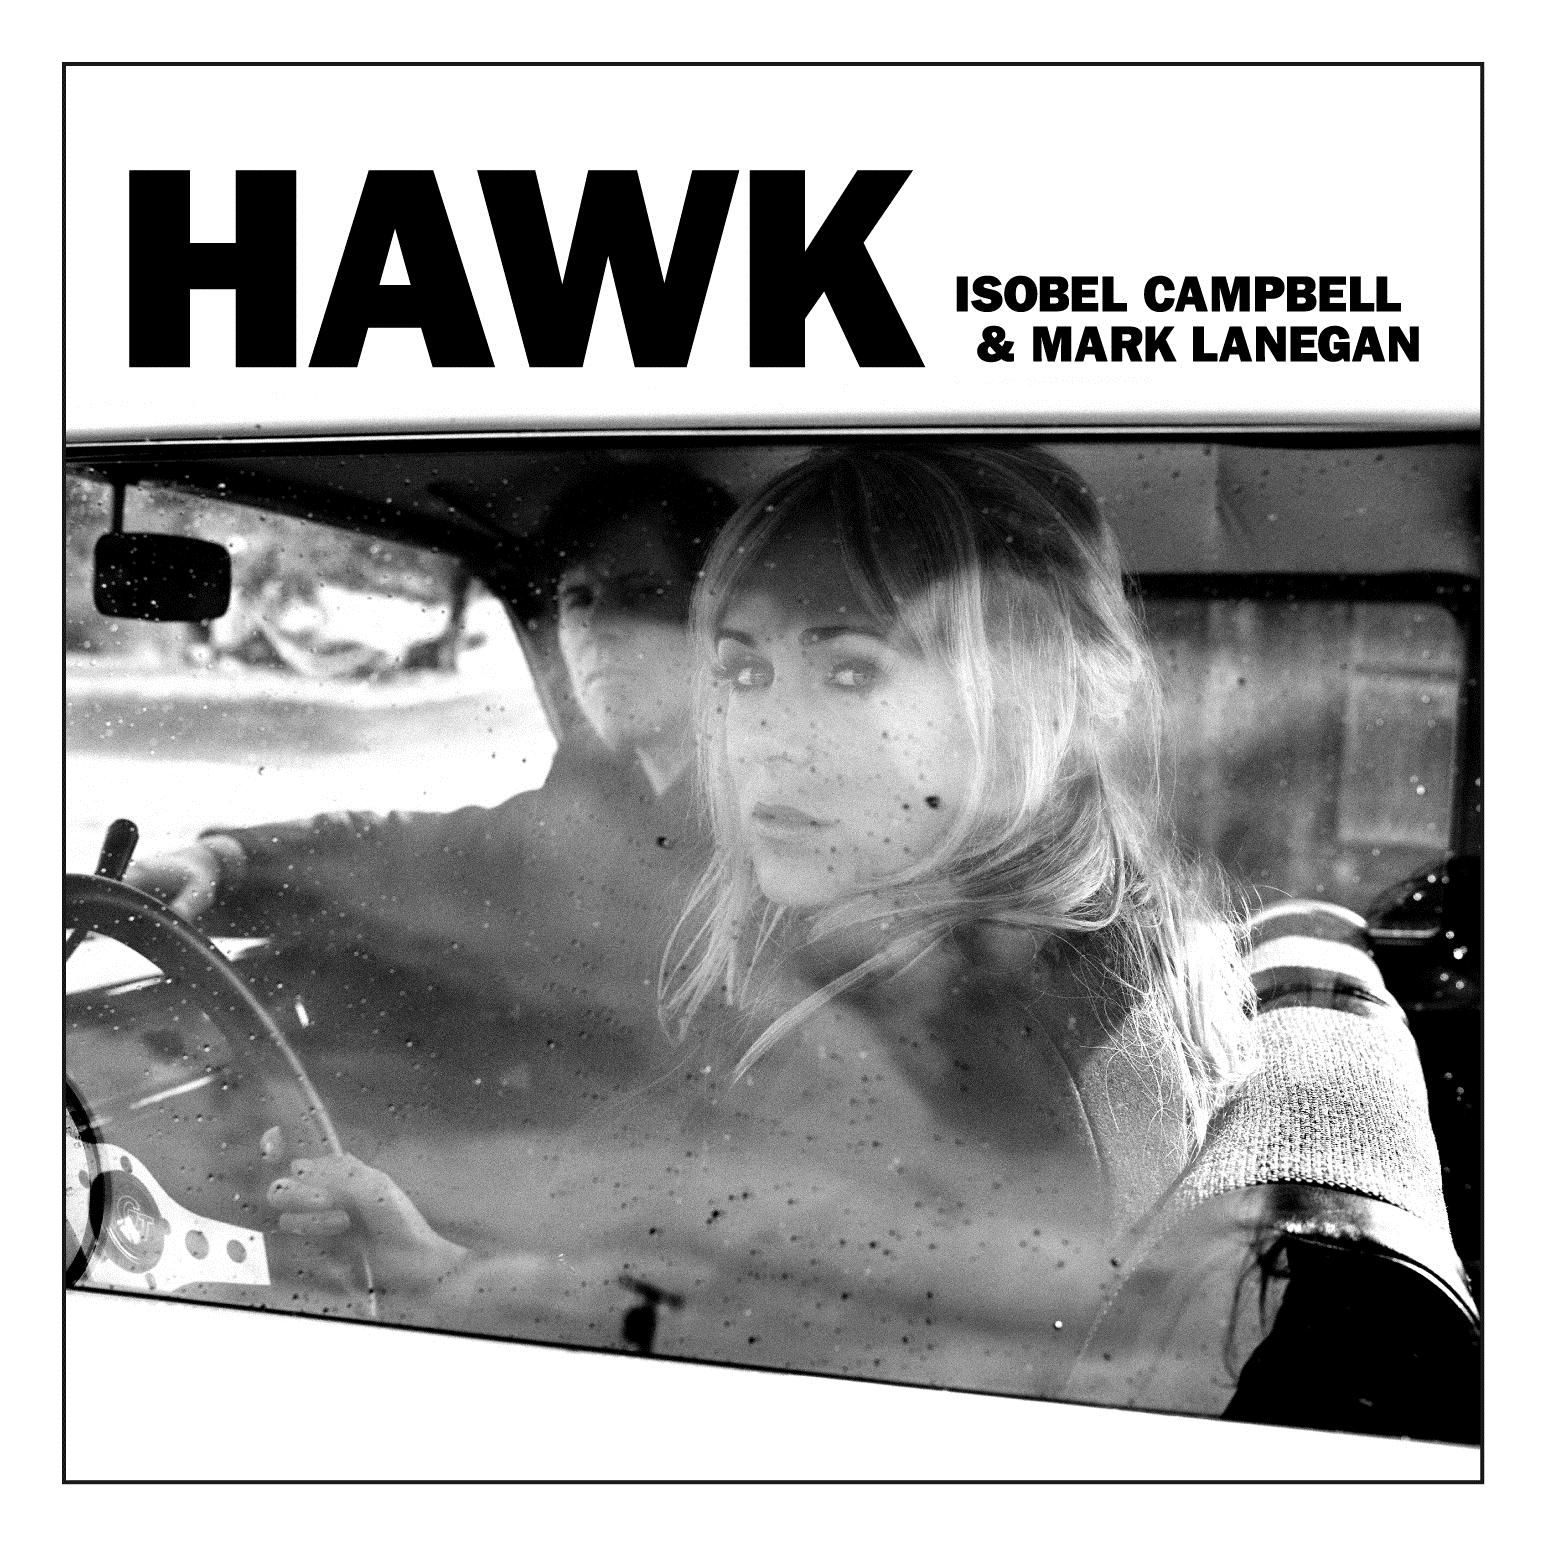 Isobel Campbell - Hawk album cover